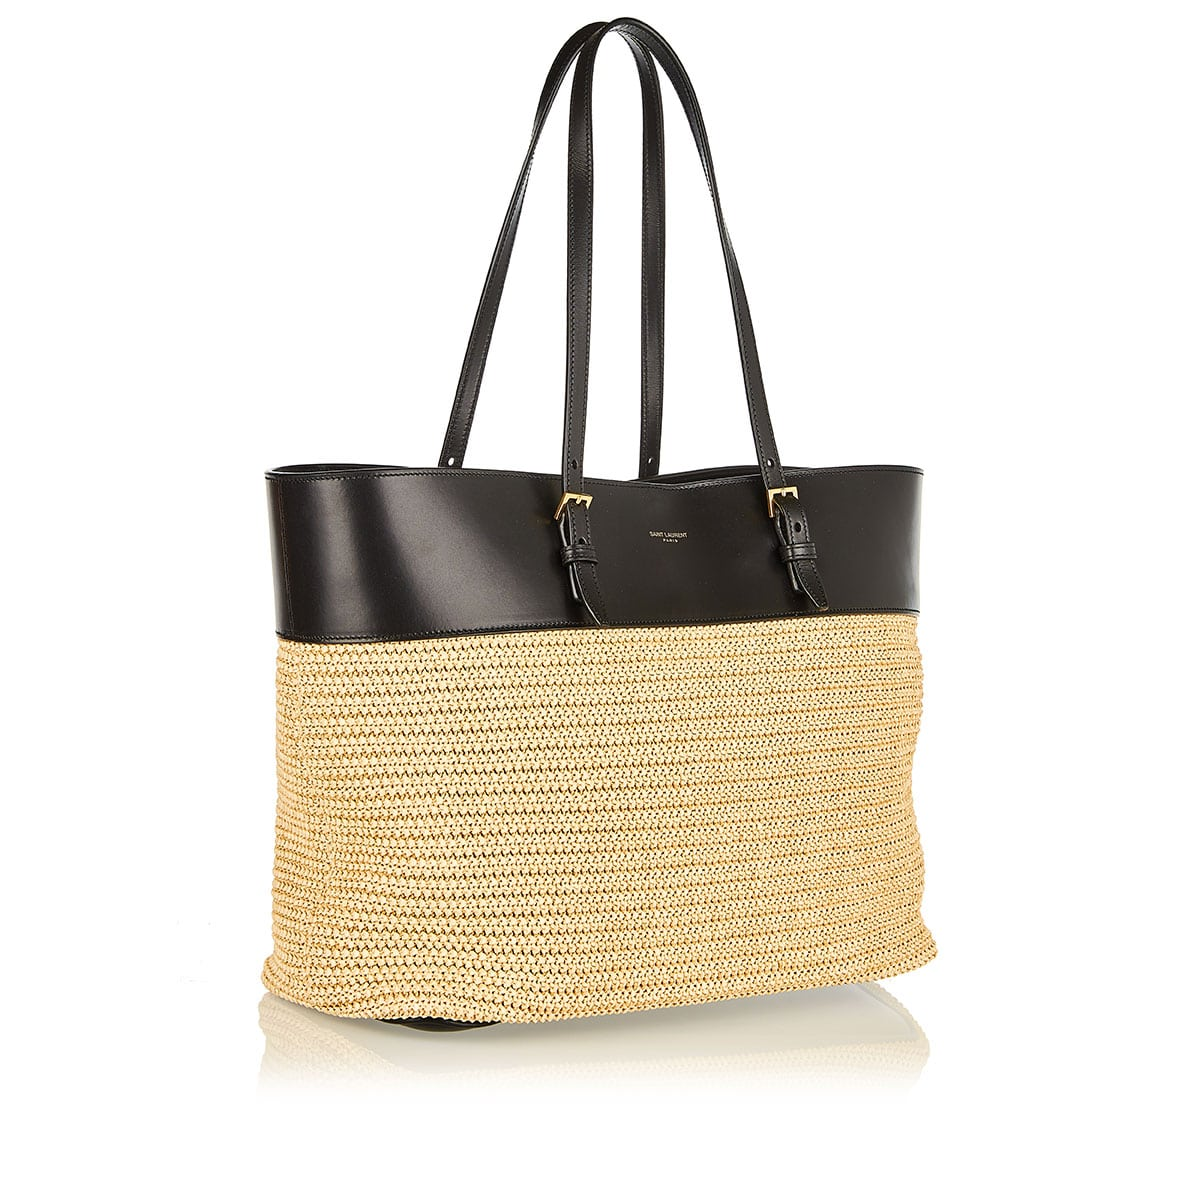 Boucle medium raffia and leather tote